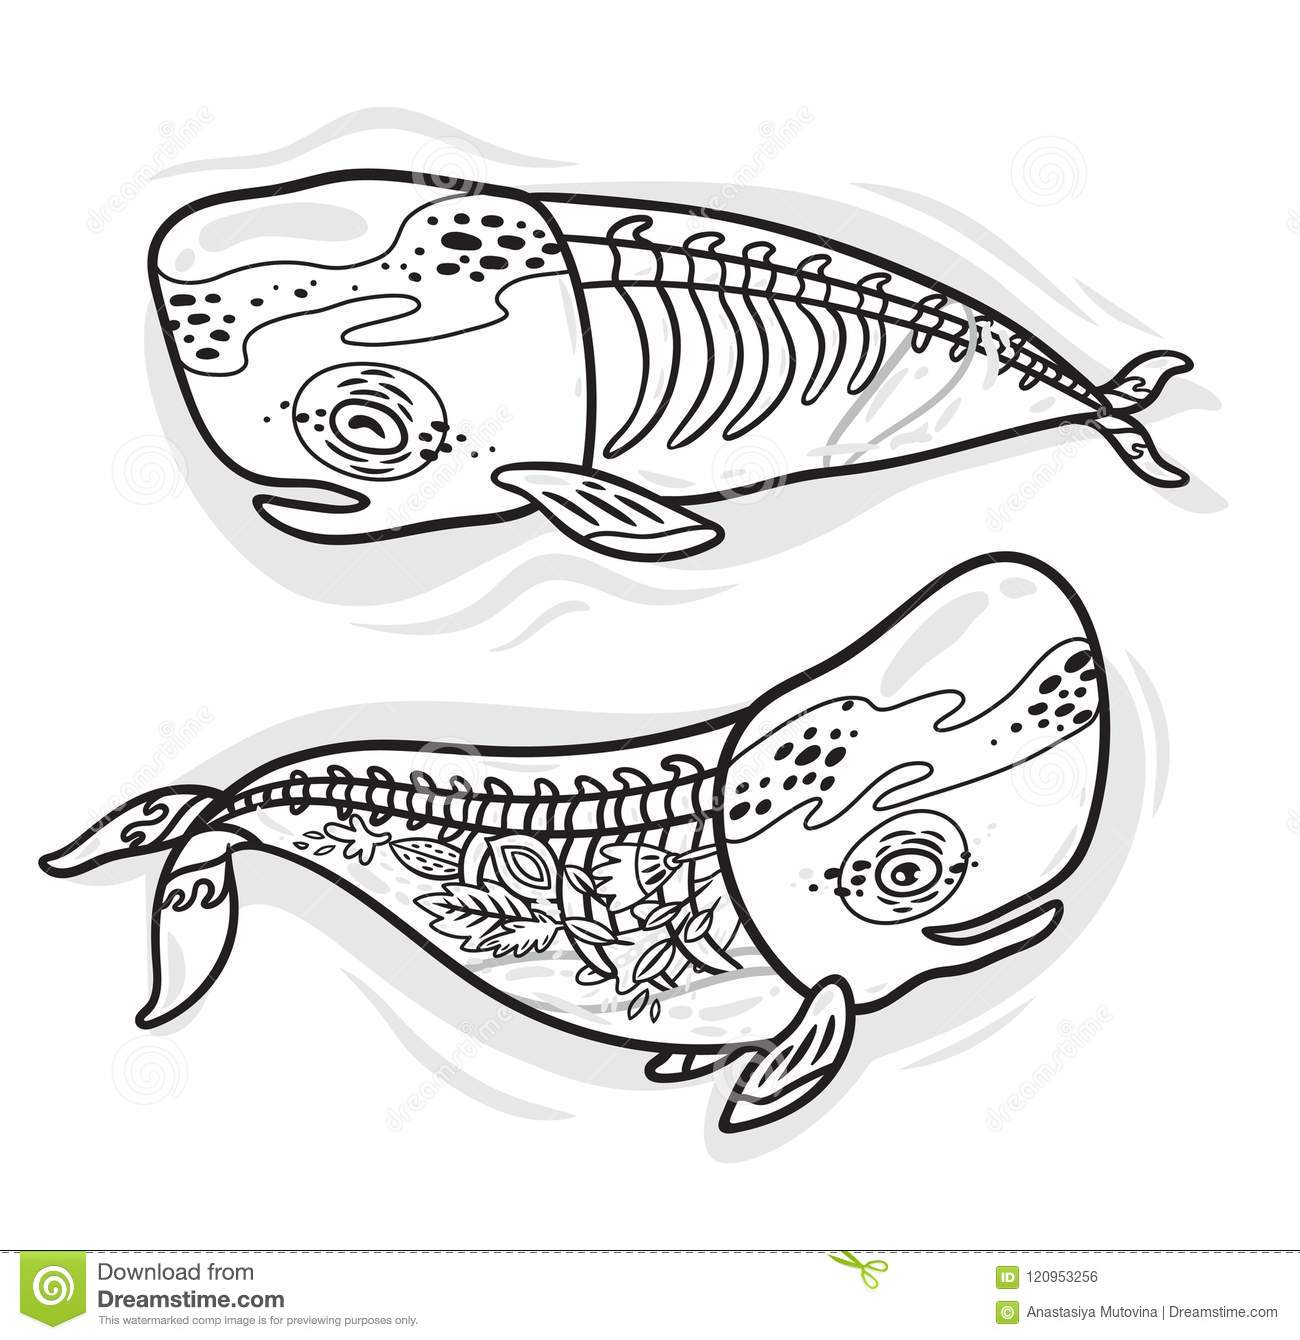 Floral Anatomy Whales In Outline. Vector Illustration Stock Vector ...